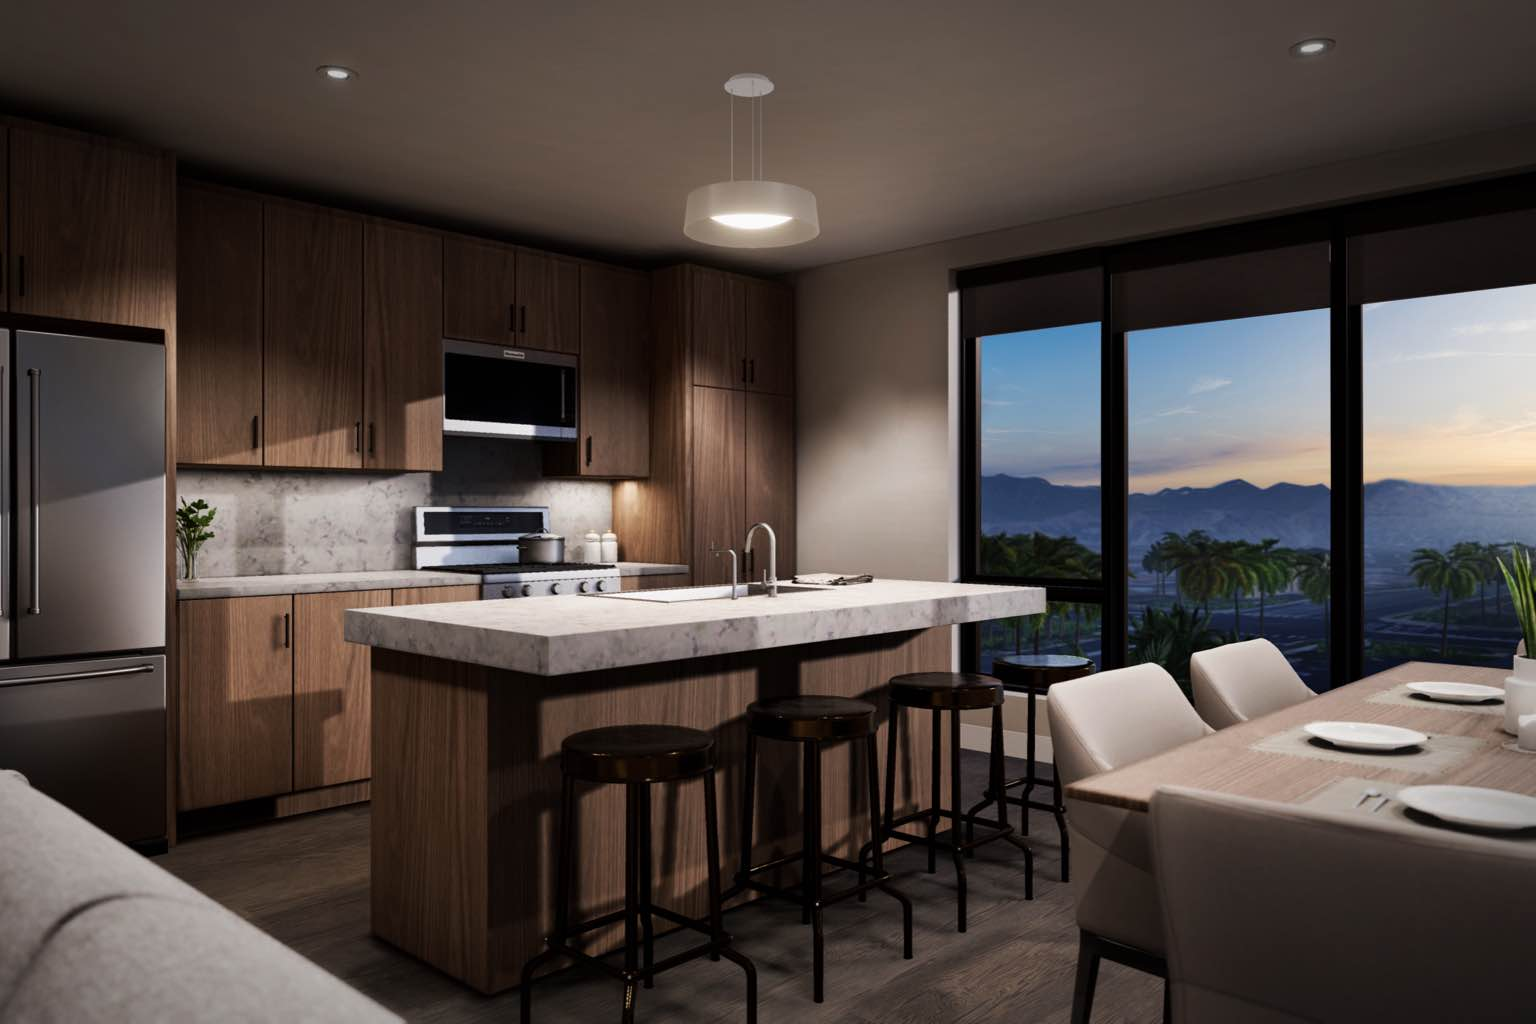 High-end kitchen in an apartment with a sunset mountain view out the window